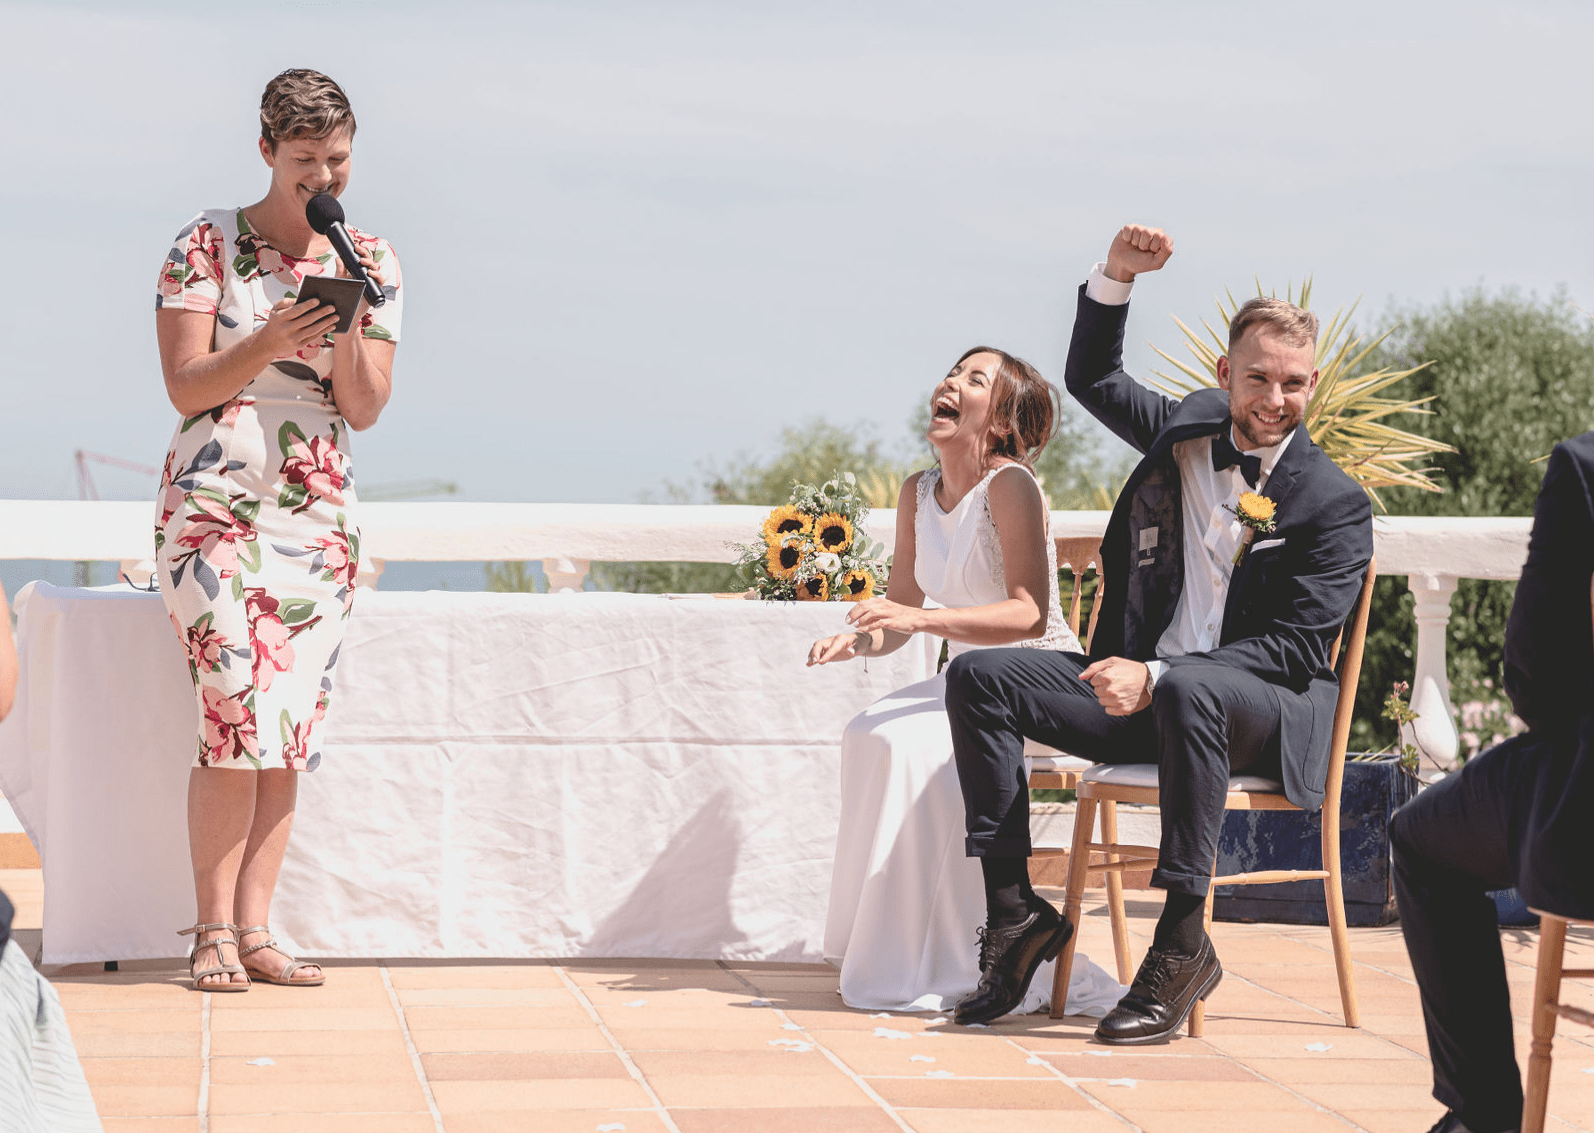 Celebrant speaking and bride and goorm laughing